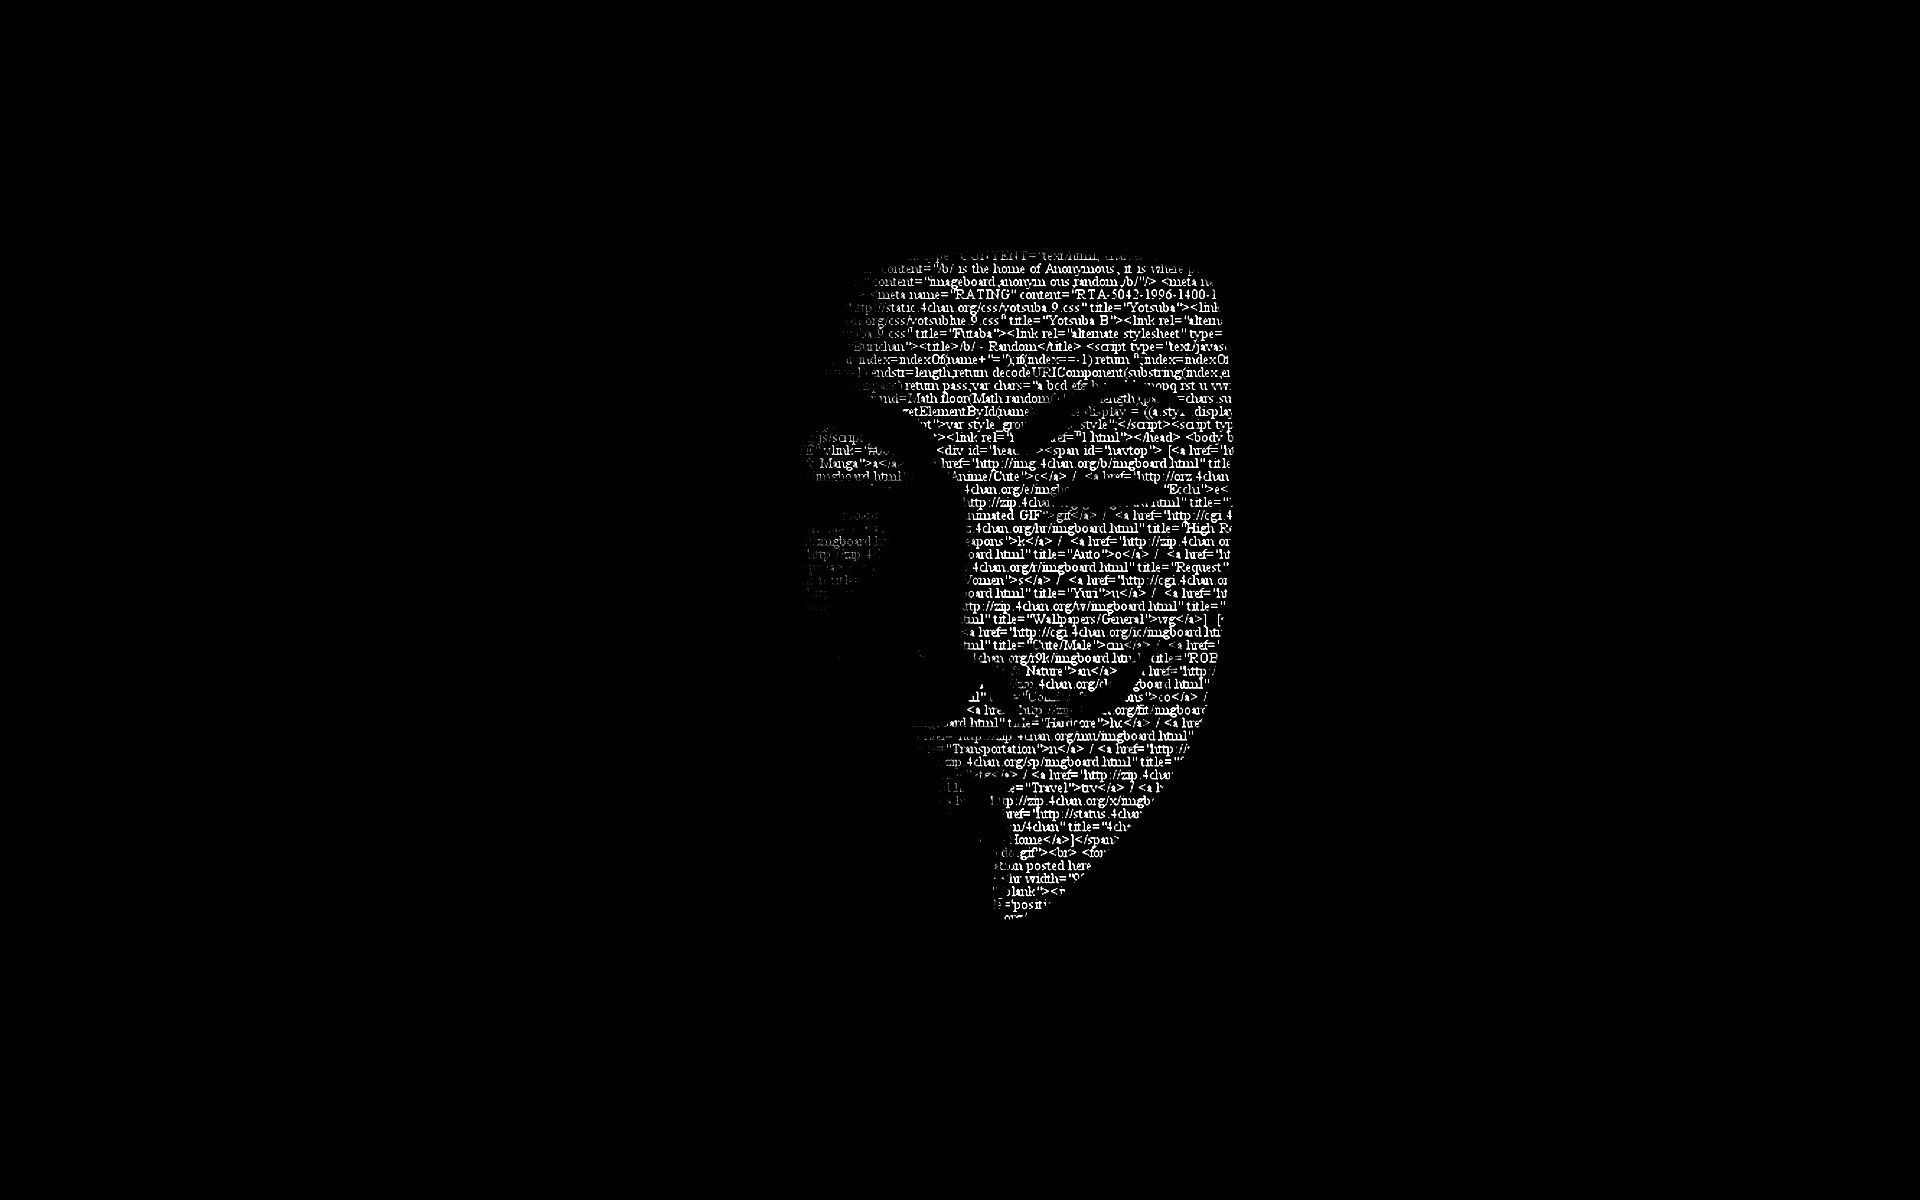 V For Vendetta Wallpapers Hd Wallpaper Cave Code Wallpaper